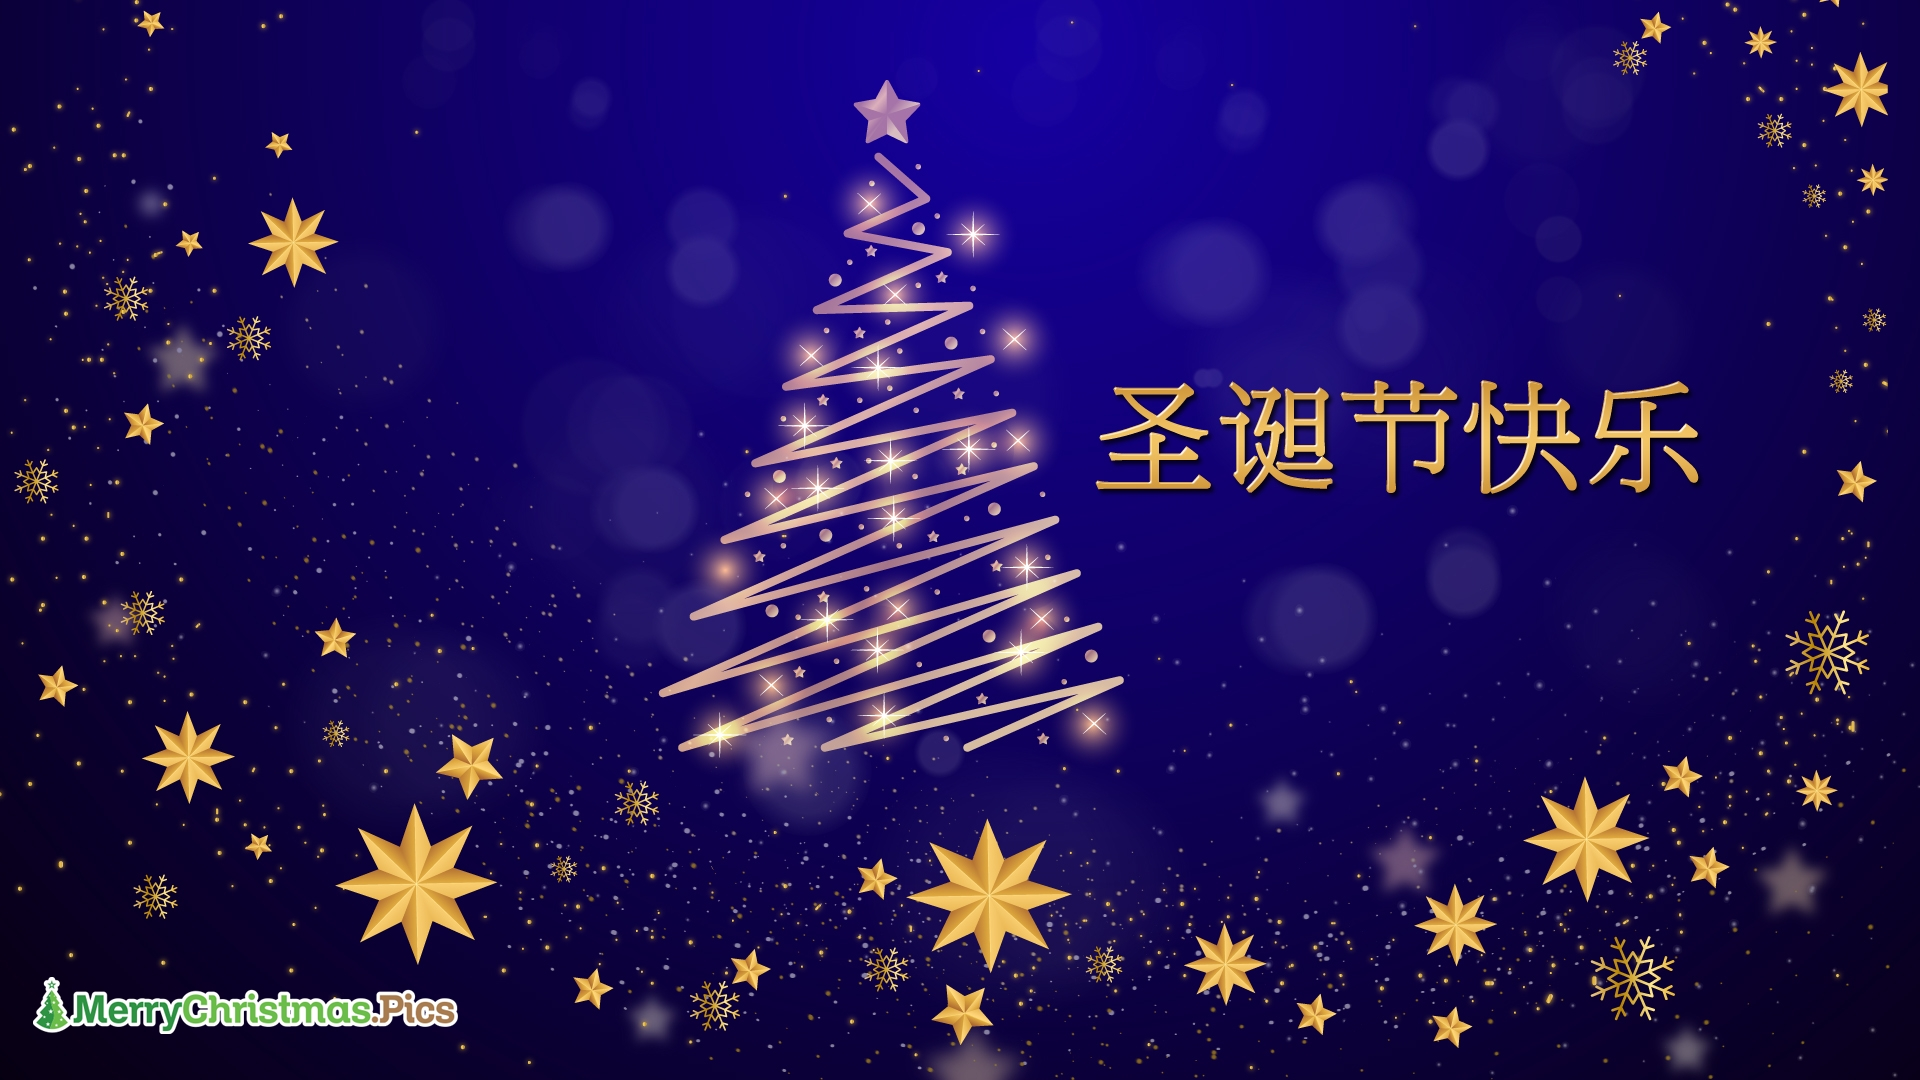 Merry Christmas Greetings In Chinese